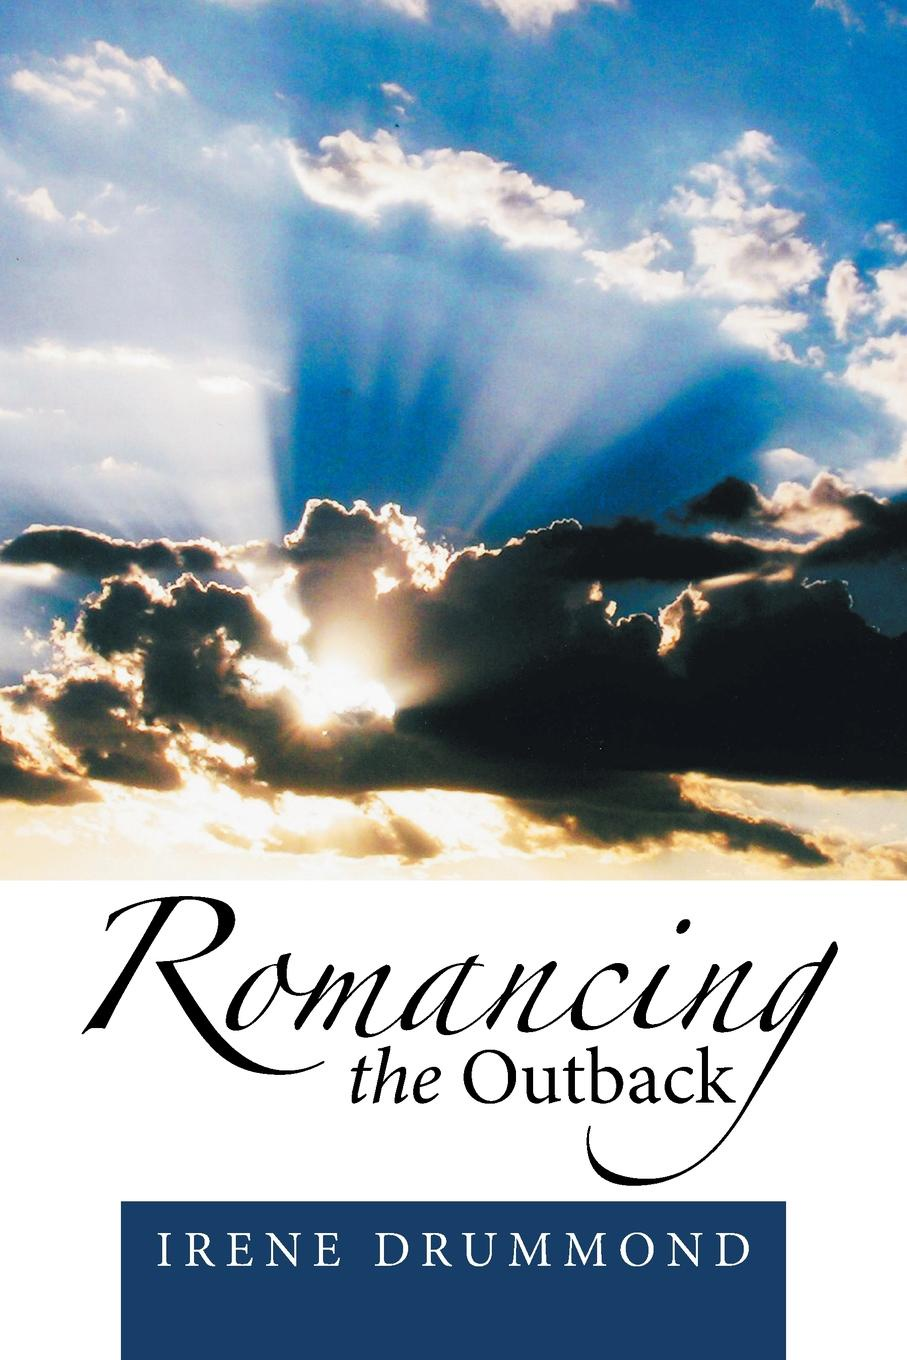 Irene Drummond Romancing the Outback debra webb romancing the tycoon